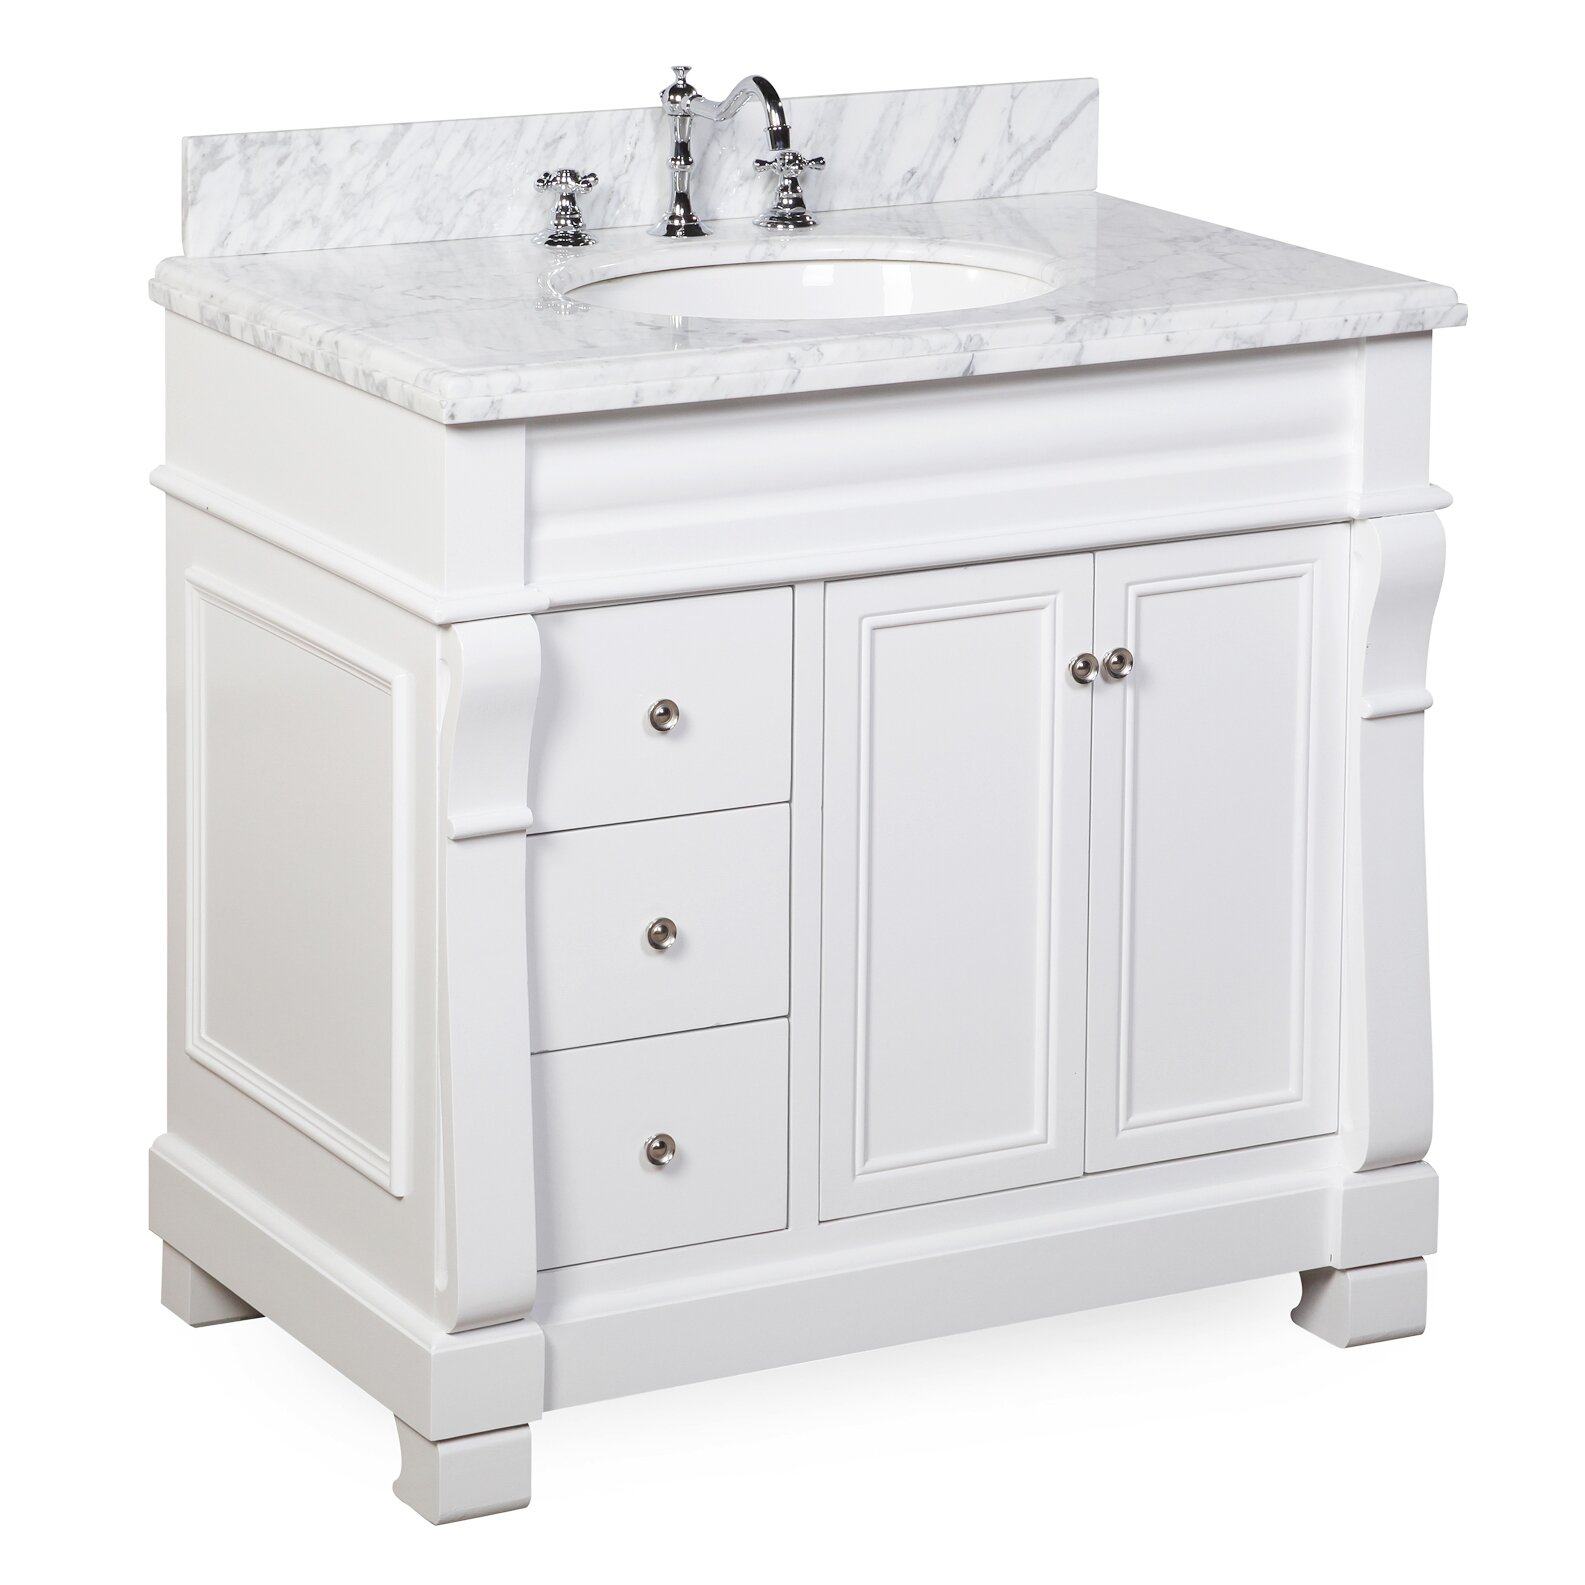 "Wayfair Bathroom Vanity >> KBC Westminster 36"" Single Bathroom Vanity Set & Reviews 